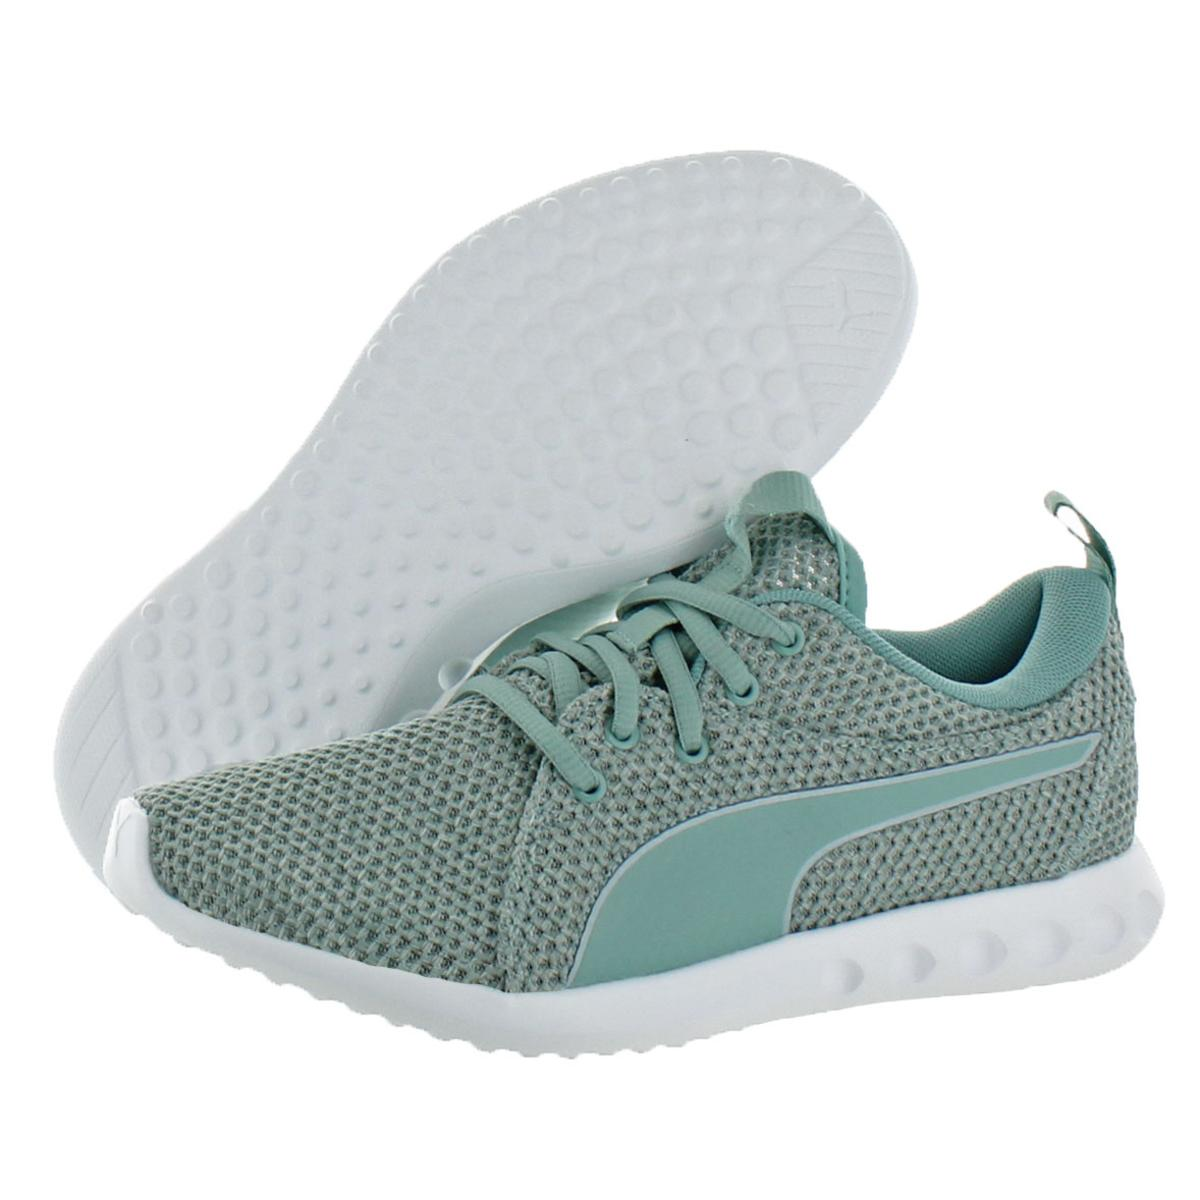 827d86fe8a0b5b Puma Carson 2 Nature Knit Women s Low-Top Running Trainer Sneaker ...